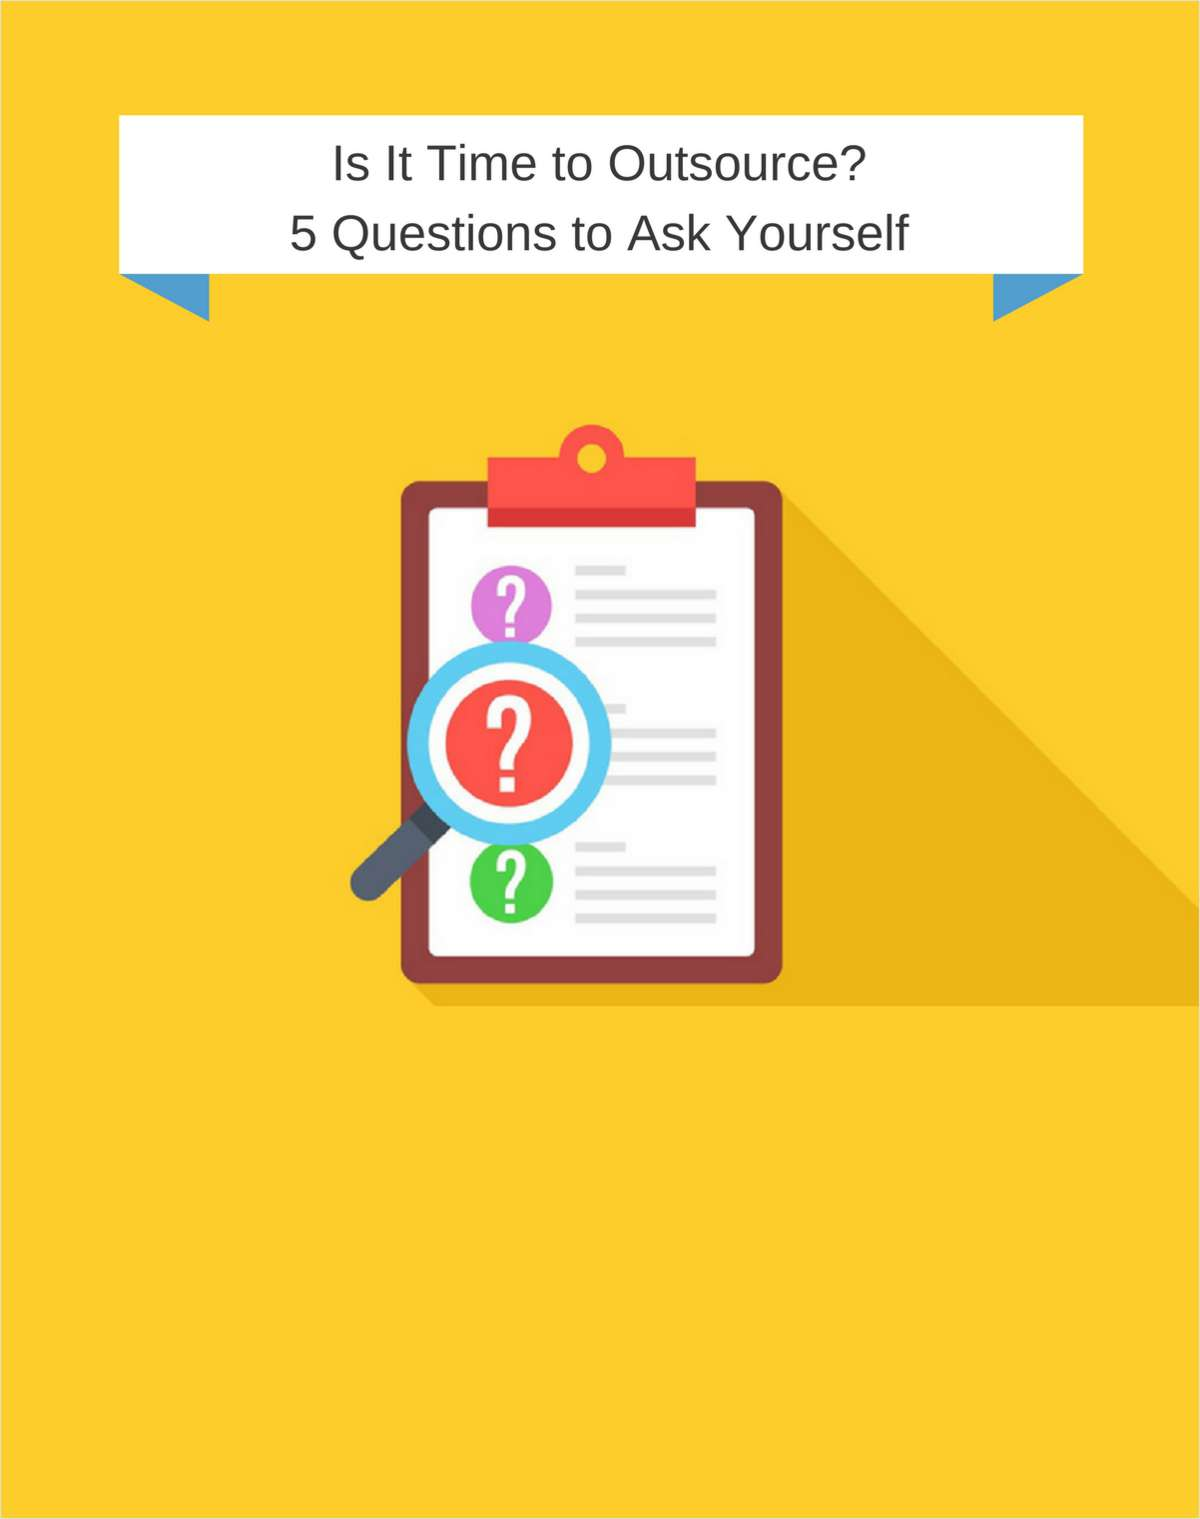 Is It Time to Outsource? 5 Questions to Ask Yourself